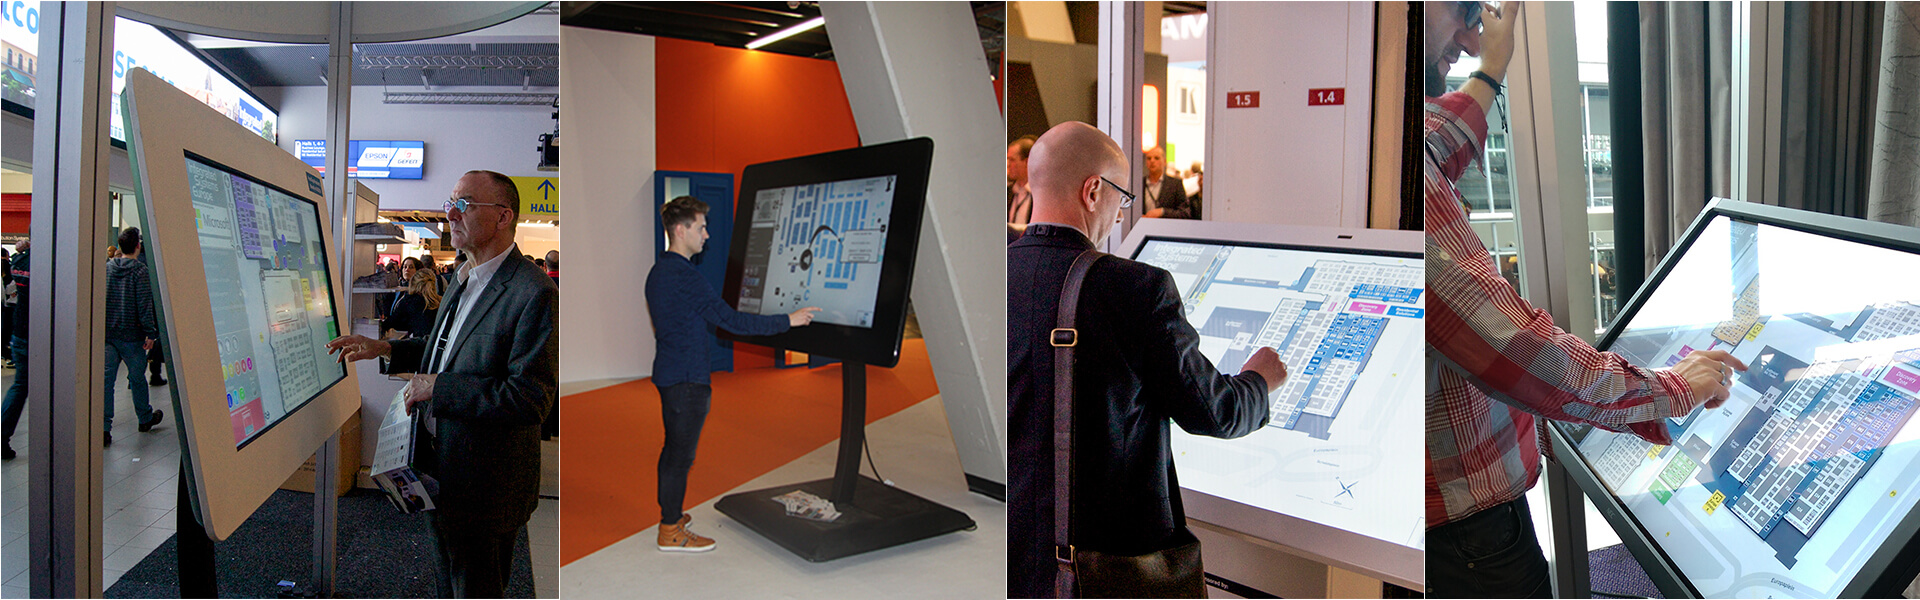 Borne tactile pivotable 55 pouces carte interactive centre commercial